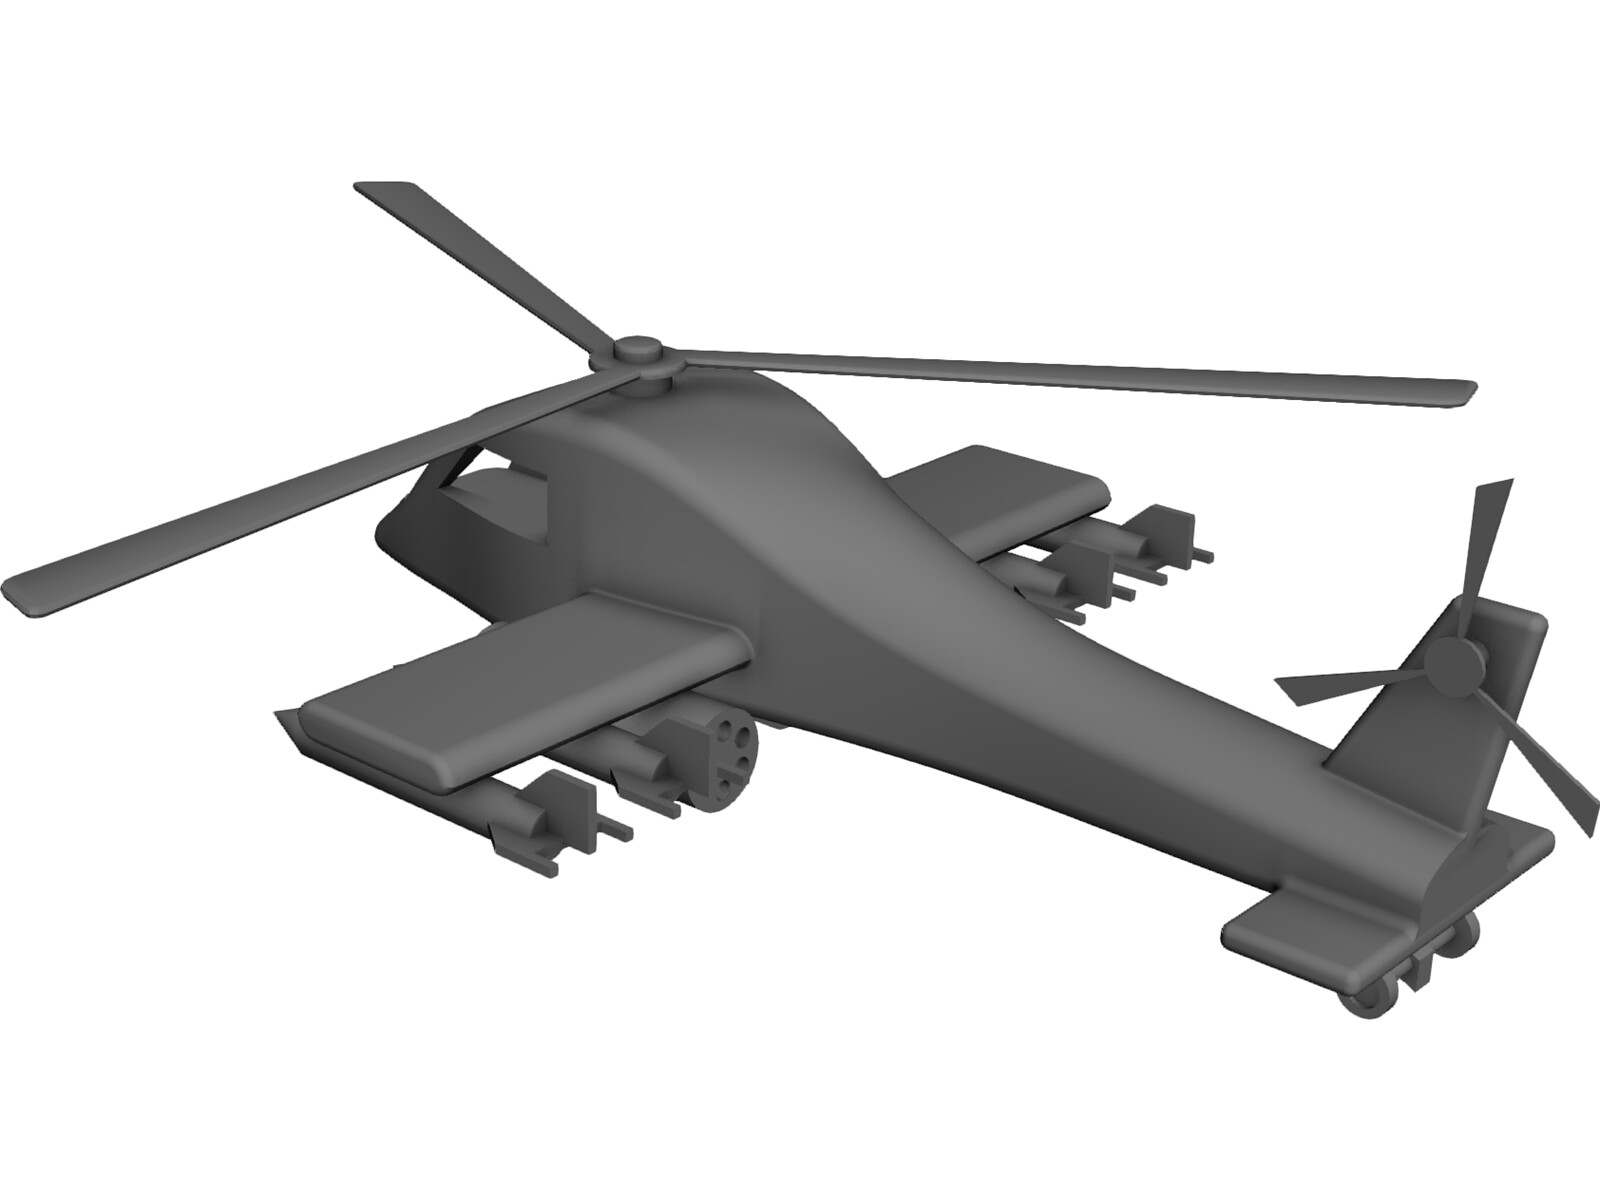 Toy Helicopter 3D CAD Model